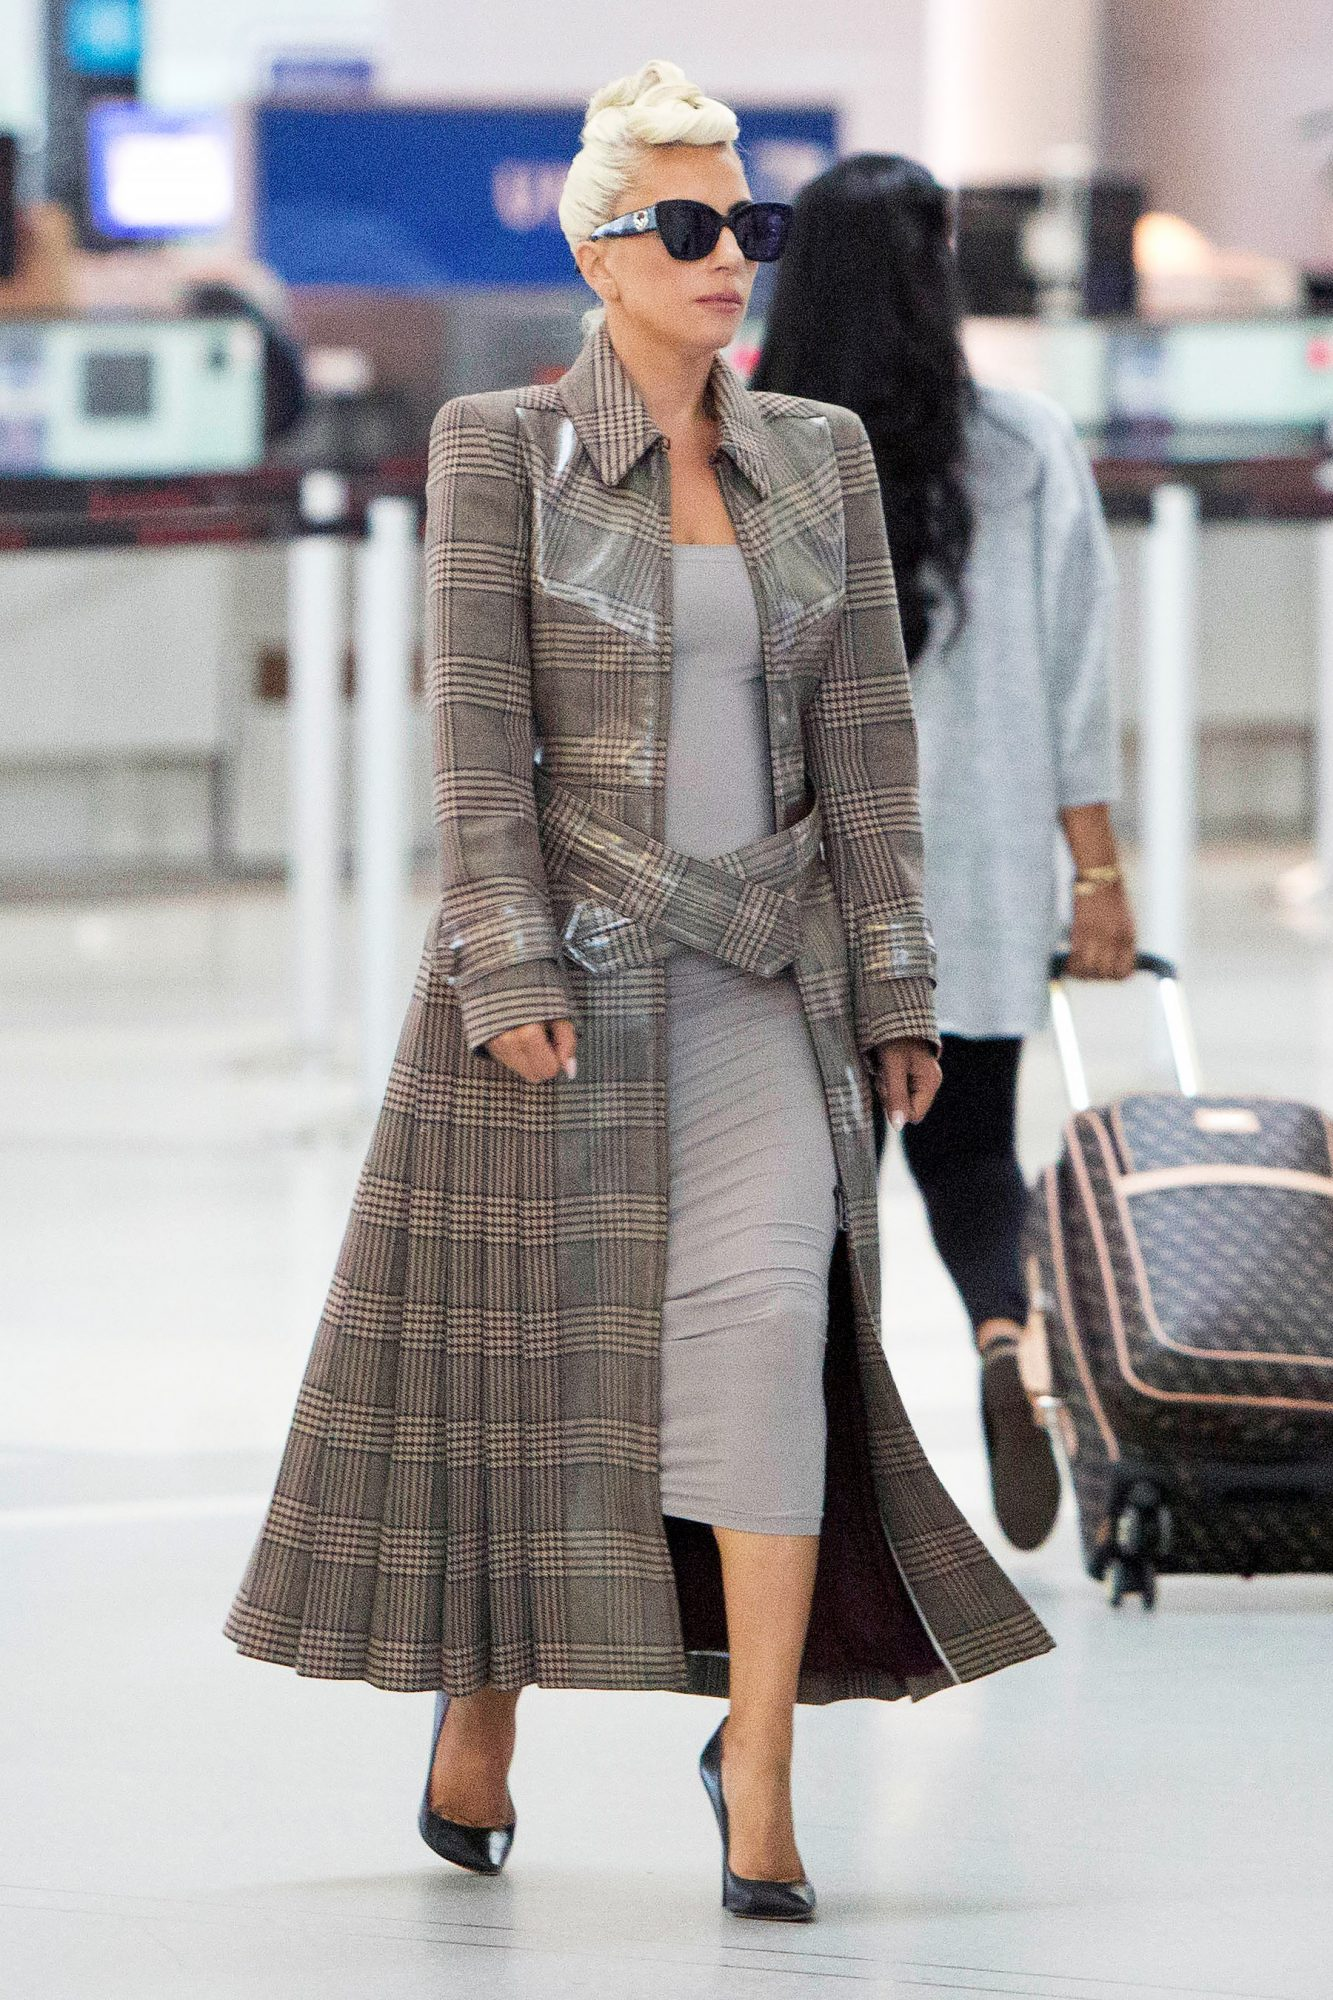 EXCLUSIVE: Lady Gaga is Spotted Arriving to an Airport in Toronto